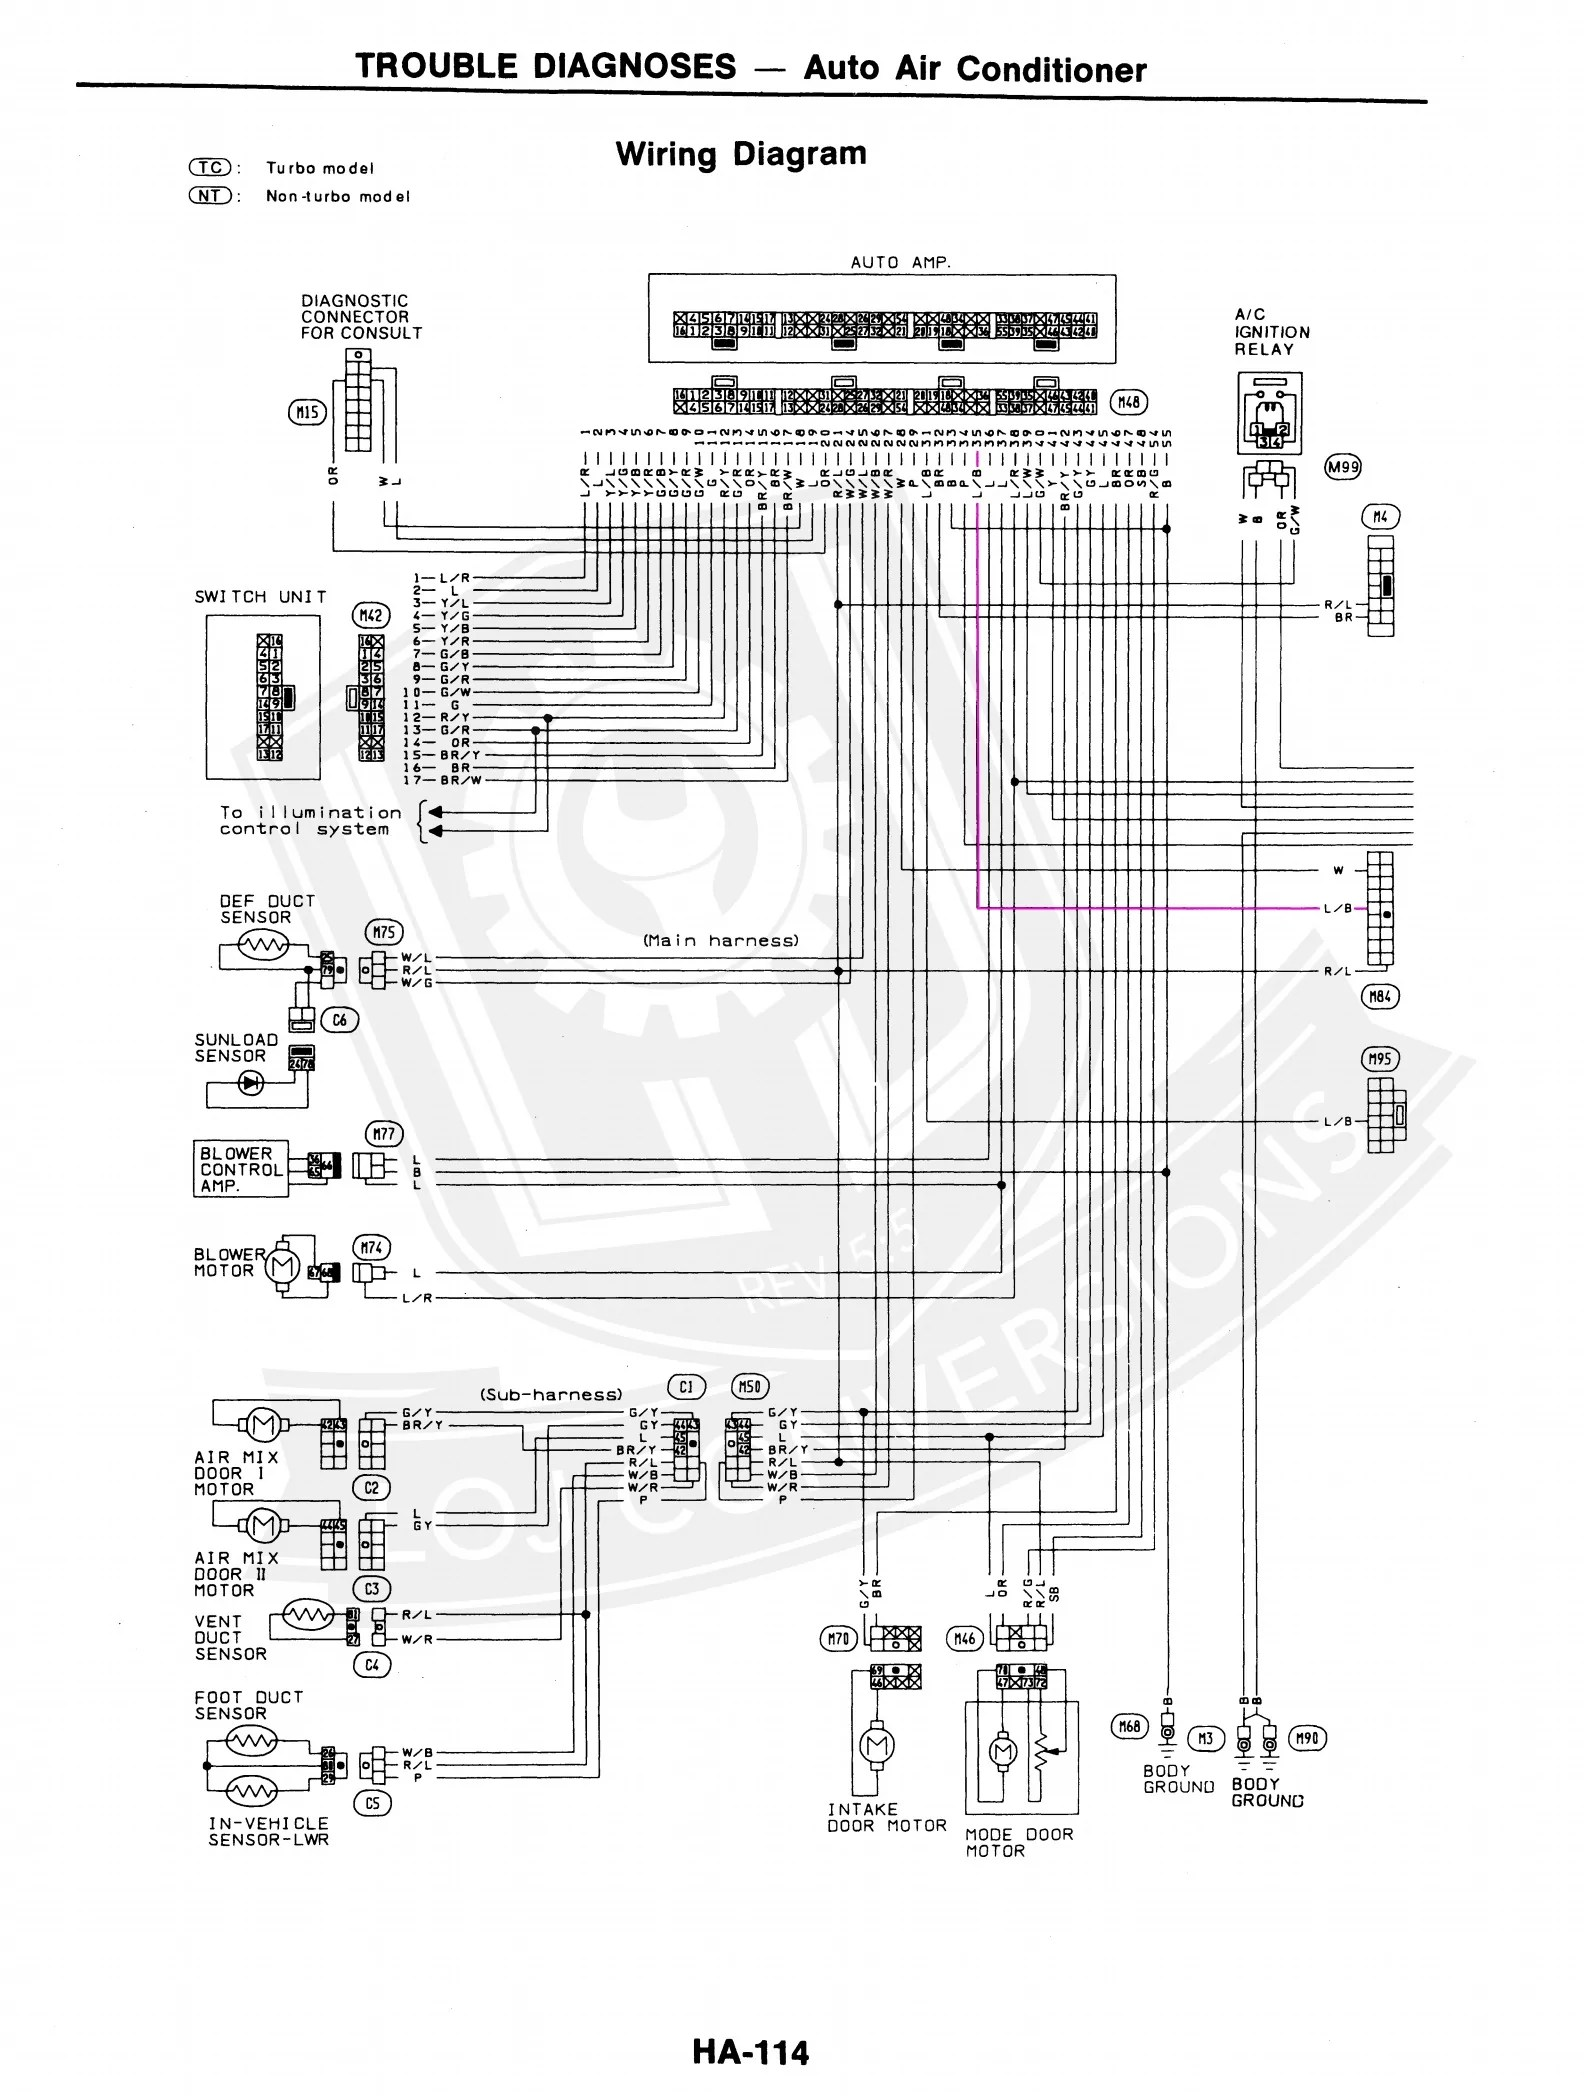 small resolution of wiring diagram 1985 300zx wiring diagram compilation 1985 nissan 300zx wiring harness 1985 circuit diagrams